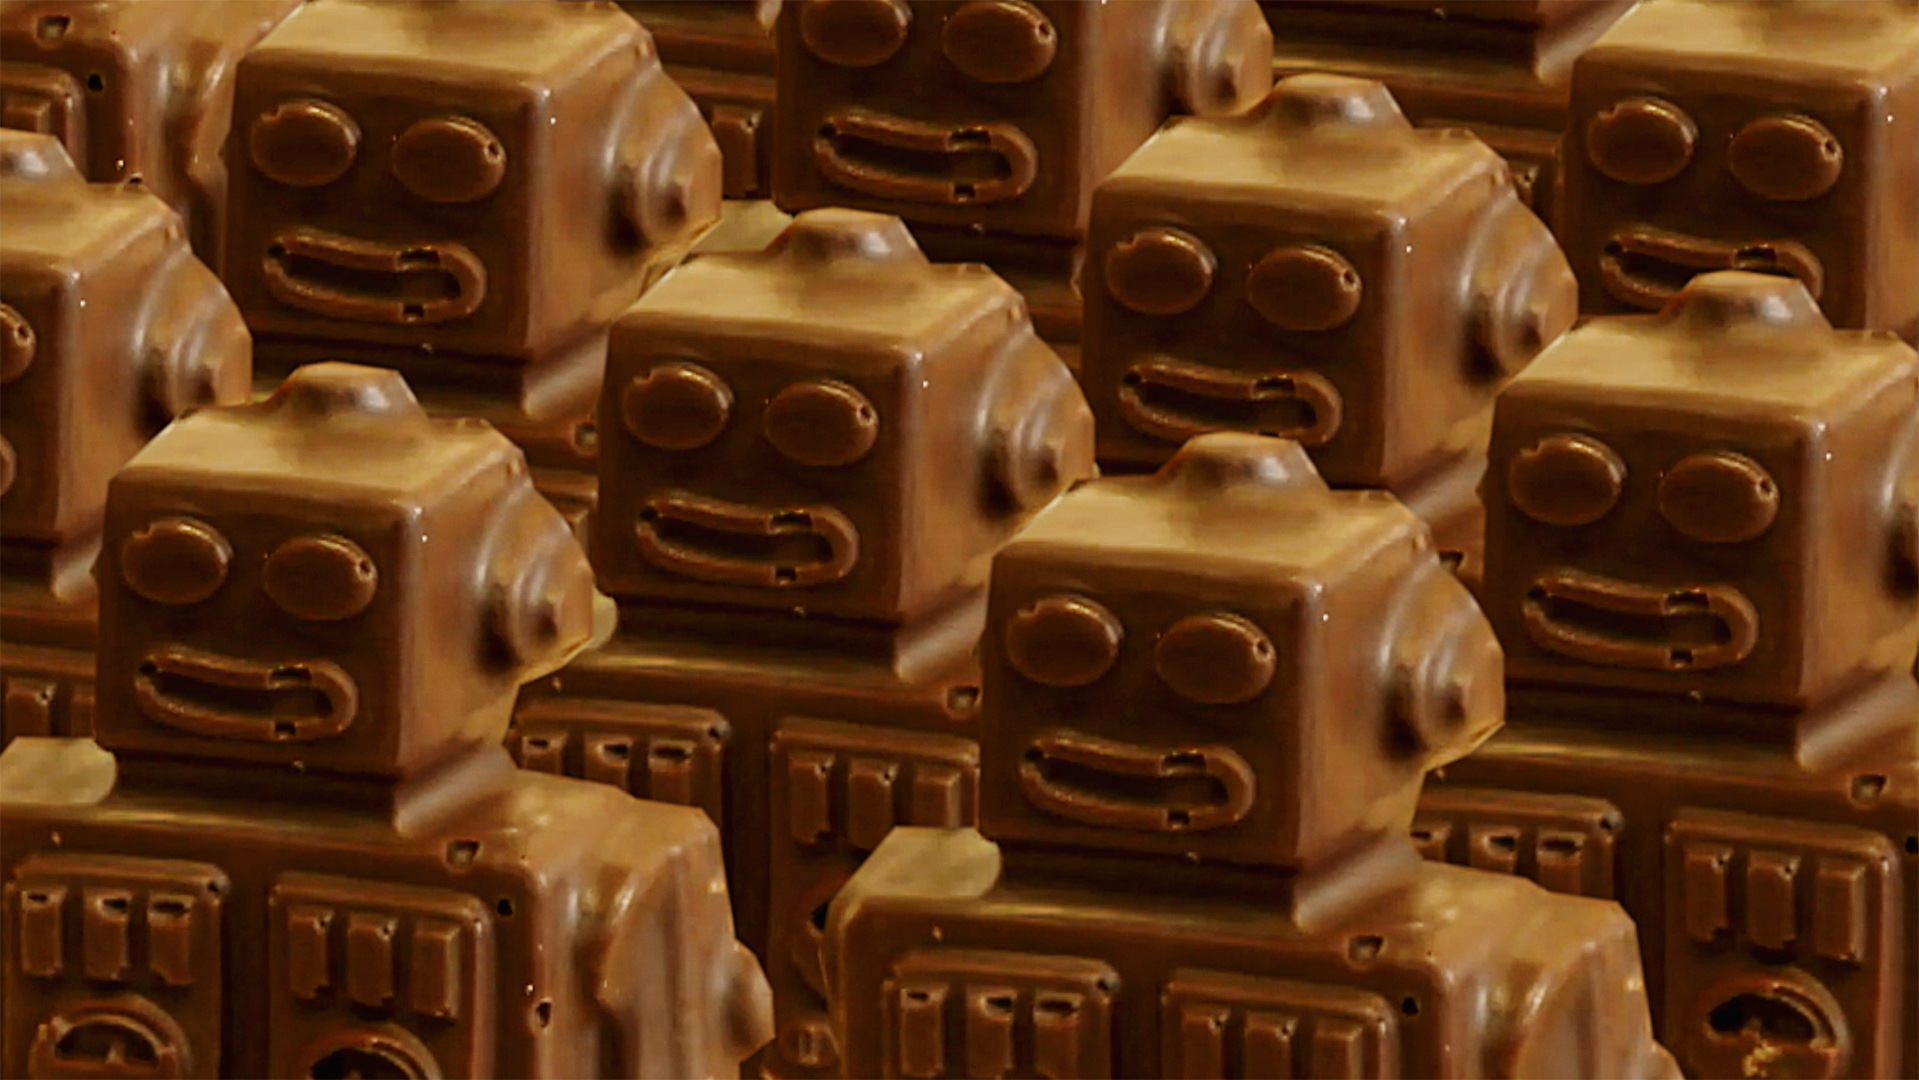 How to make a Chocolate Robot Army